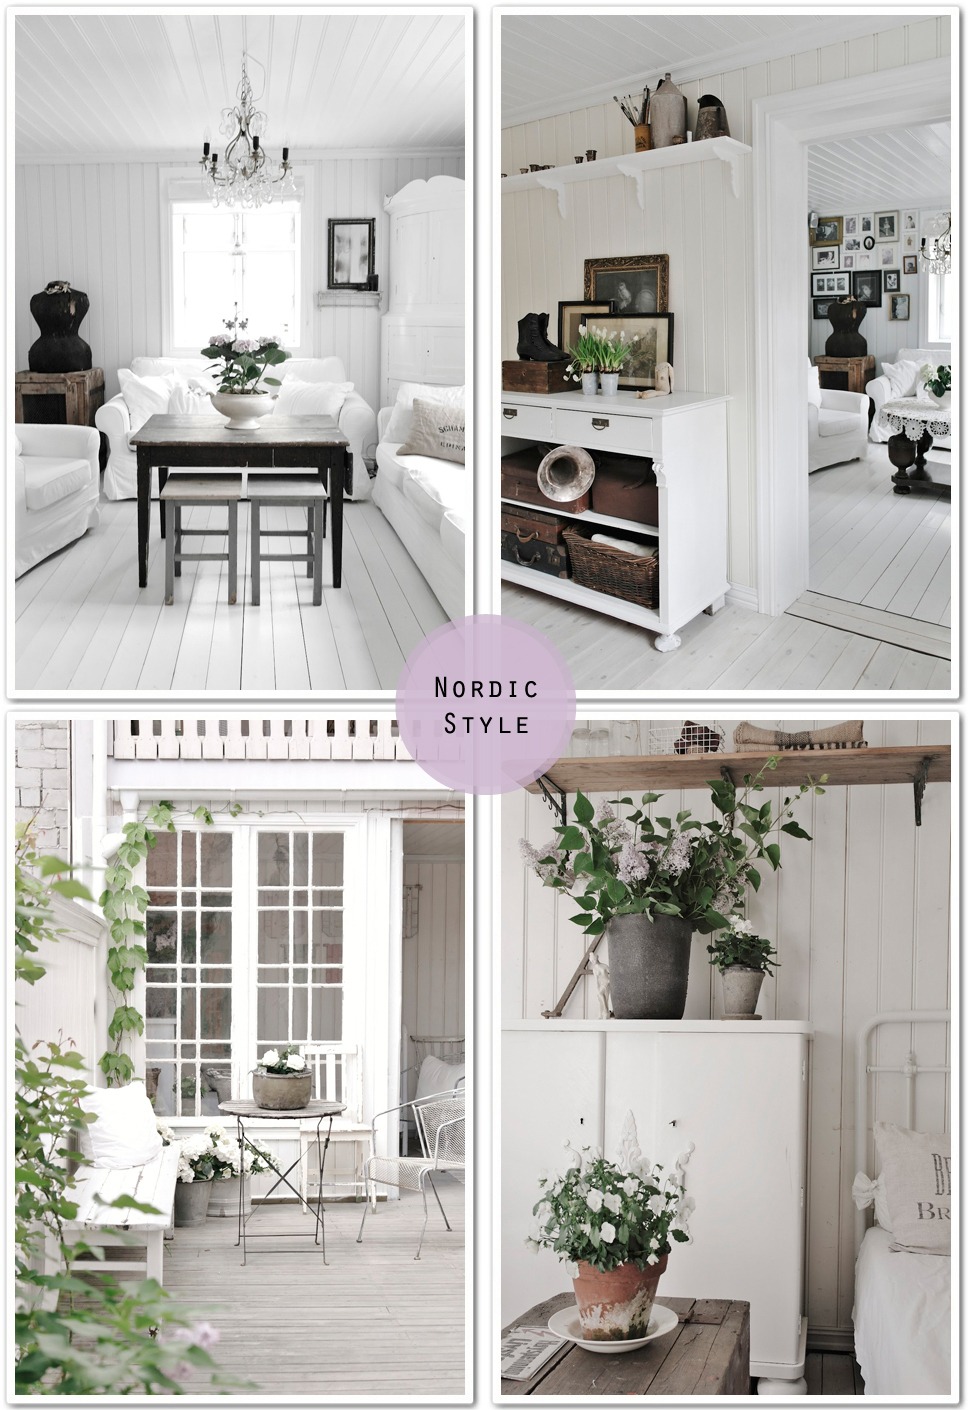 Stile nordico   shabby chic interiors